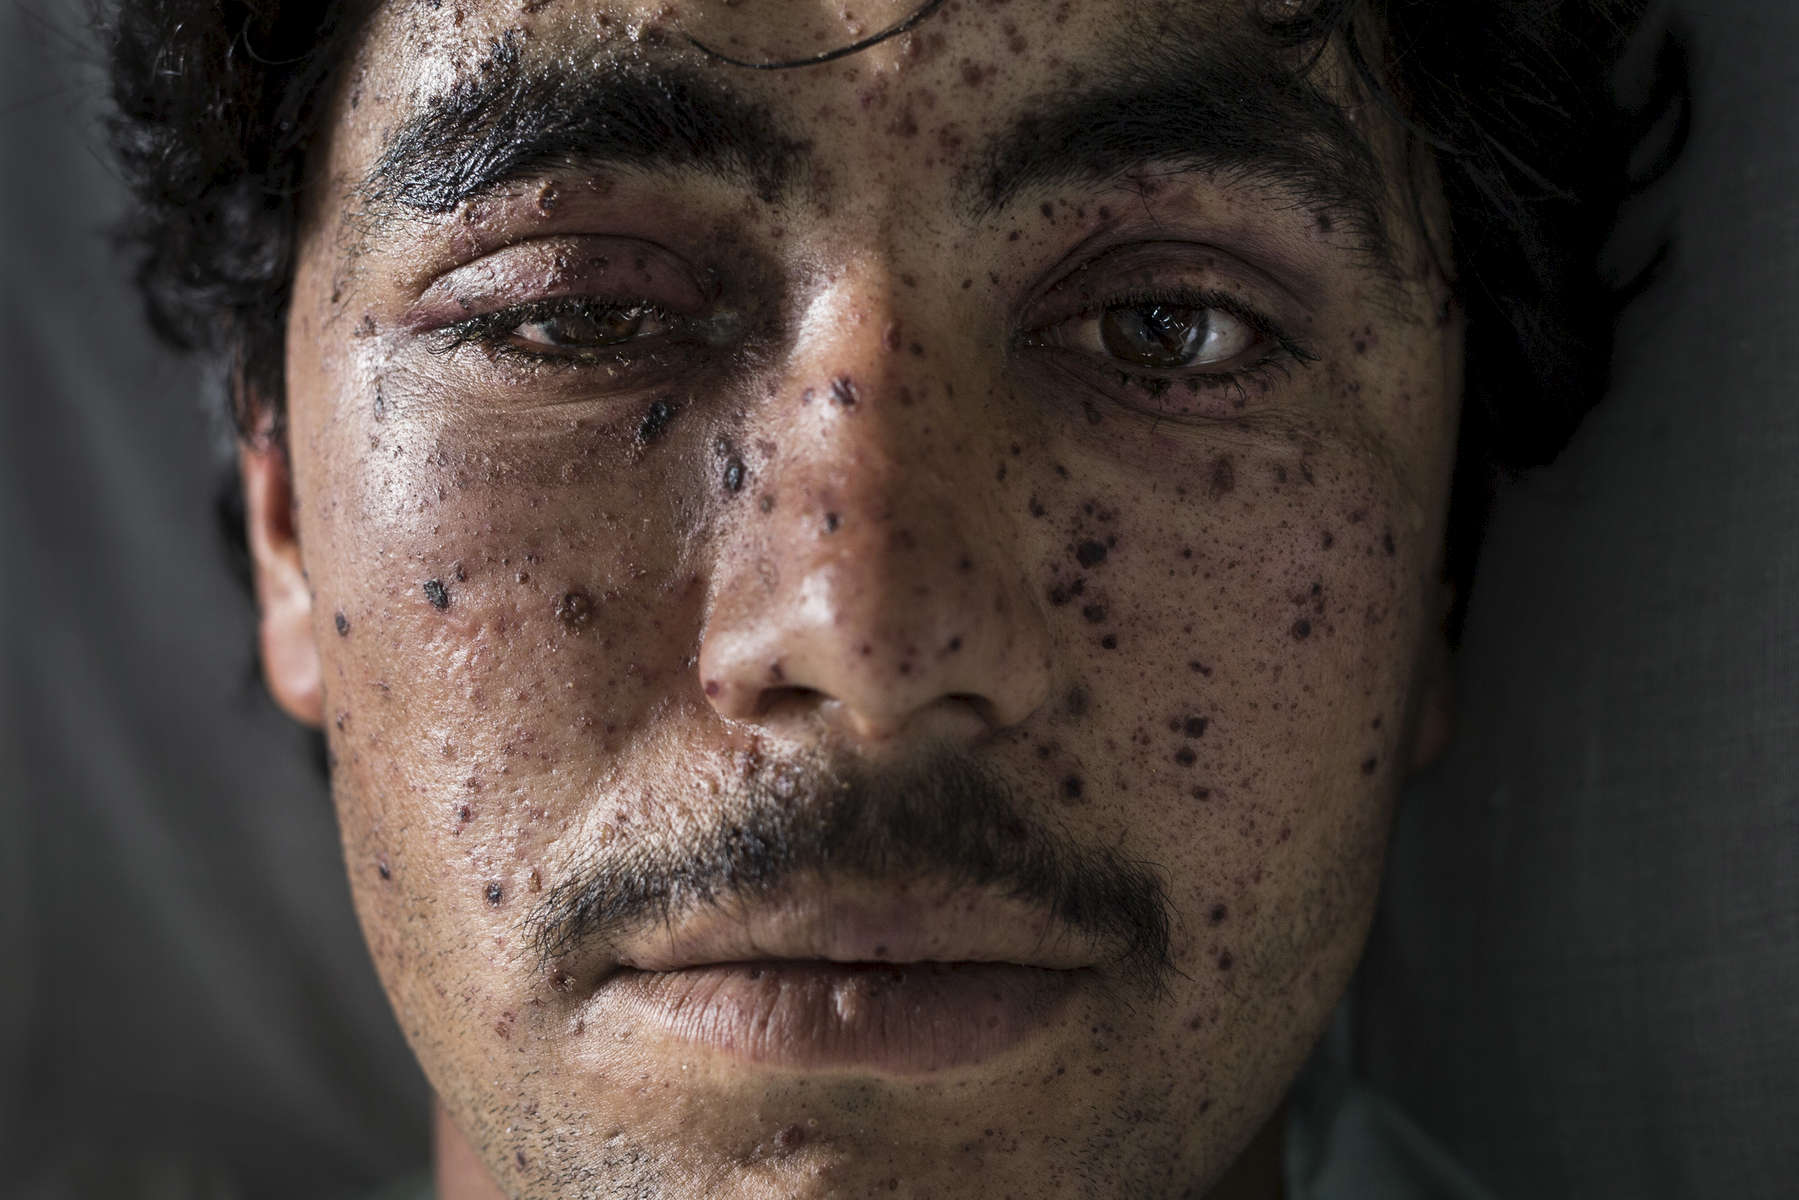 LASHKAR GAH, AFGHANISTAN -MARCH 26, 2015: Kharim Ahmad,22, suffered shrapnel wounds on his face and the loss of a leg from fighting in Sangin. He was being treated at the Emergency hospital in Lashkar Gah on March 25. As of April, 2016 the Emergency hospital stated that in the first quarter their patient numbers were up more than 30% from last year. They stated that patients are coming from much further distances now especially since the bombing of the MSF hospital in Kunduz last year which cared for many in the region. Every year the UN comes out with their report documenting the unfortunate carnage from America's longest and most costly war in history. Along with the price tag estimated in the hundreds of billions, the human toll from a 2015 UN Assistance Mission To Afghanistan (UNAMA) report stated the number of Afghan civilians killed and wounded surpassed 11,000.  which was the deadliest on record for civilians in Afghanistan since the US-led invasion more than 14 years ago.